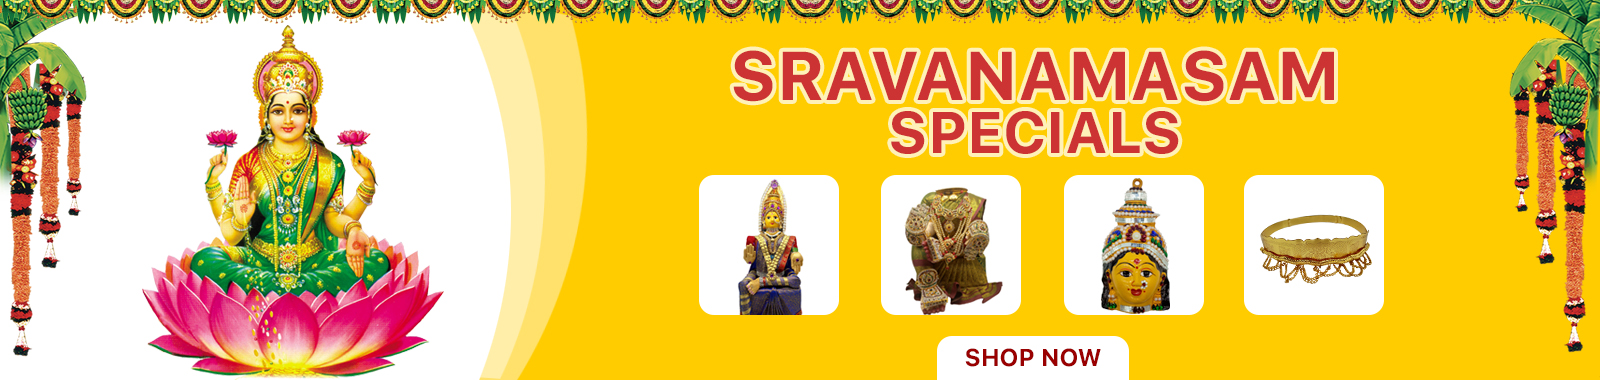 Sravanamasam Special Offers